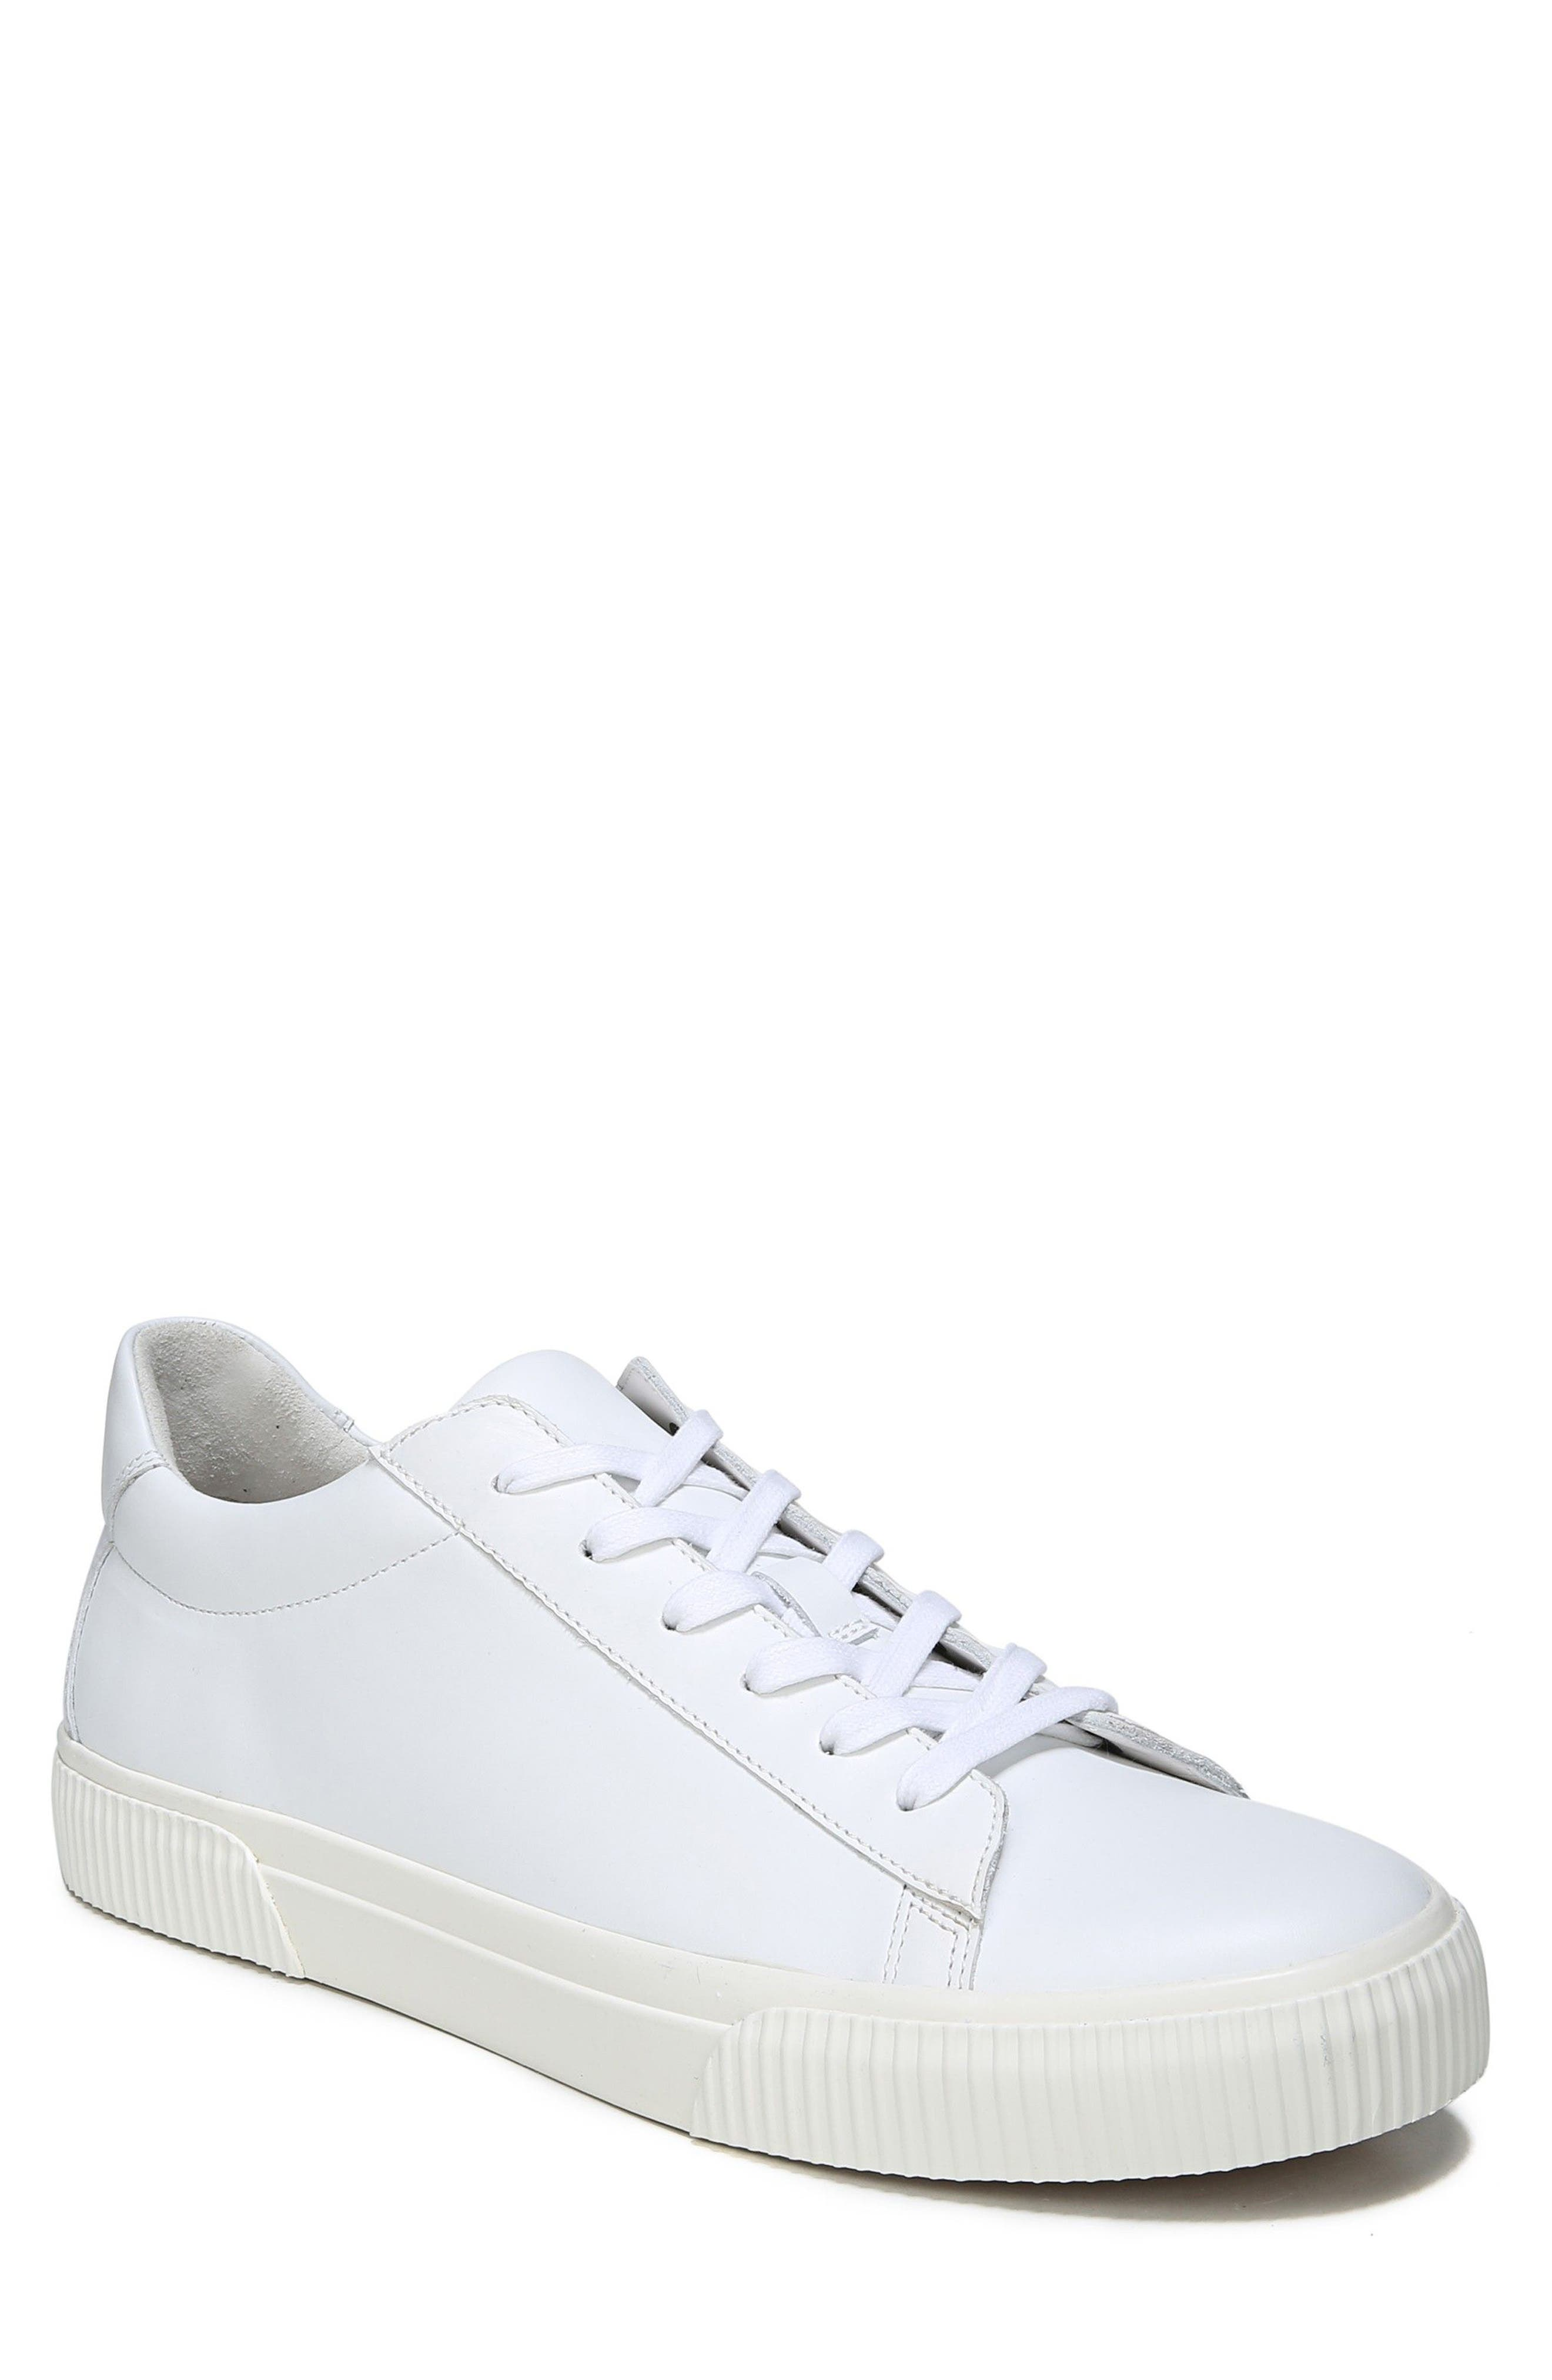 Kurtis Low Top Sneaker,                         Main,                         color, WHITE